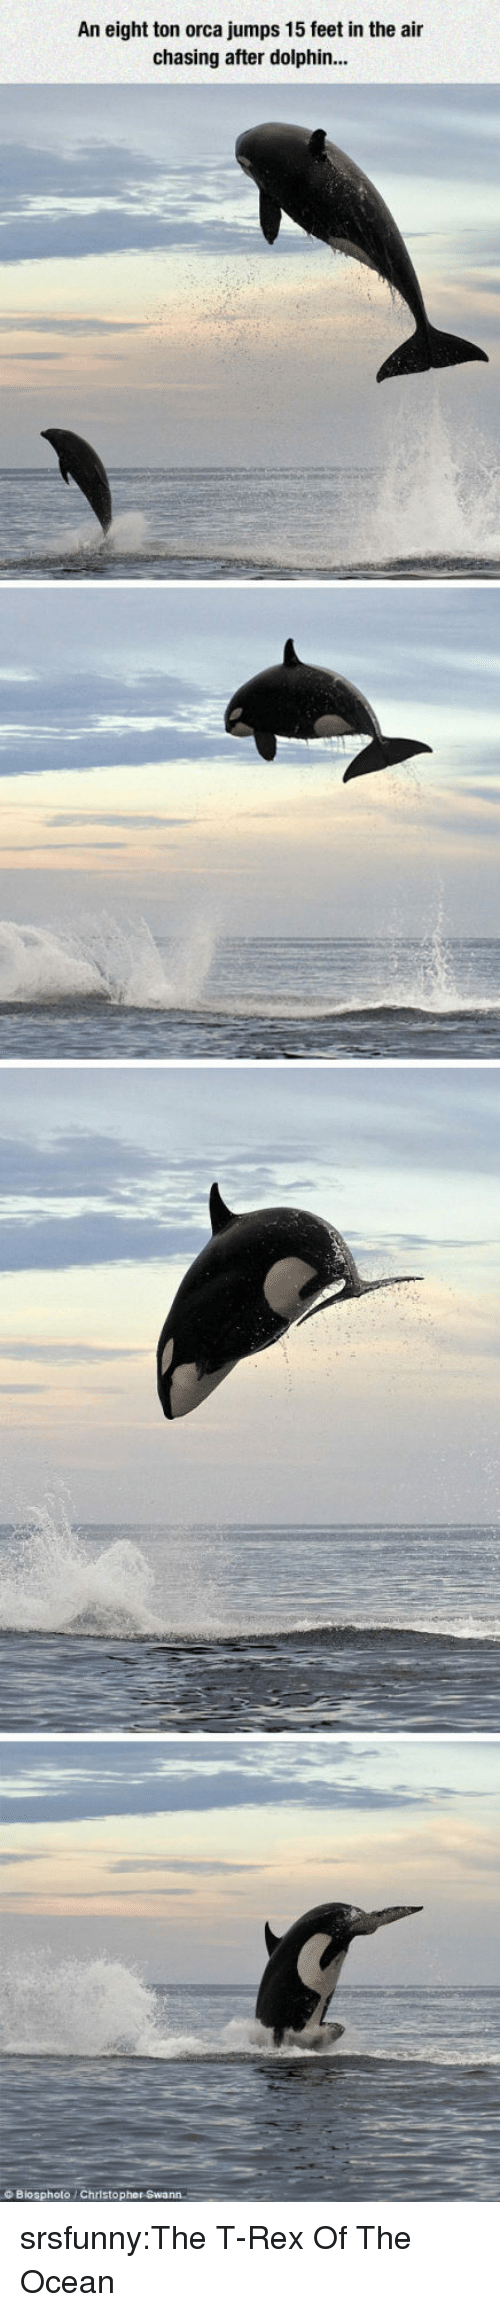 orca: An eight ton orca jumps 15 feet in the air  chasing after dolphin..  Biosphoto/ Christop srsfunny:The T-Rex Of The Ocean